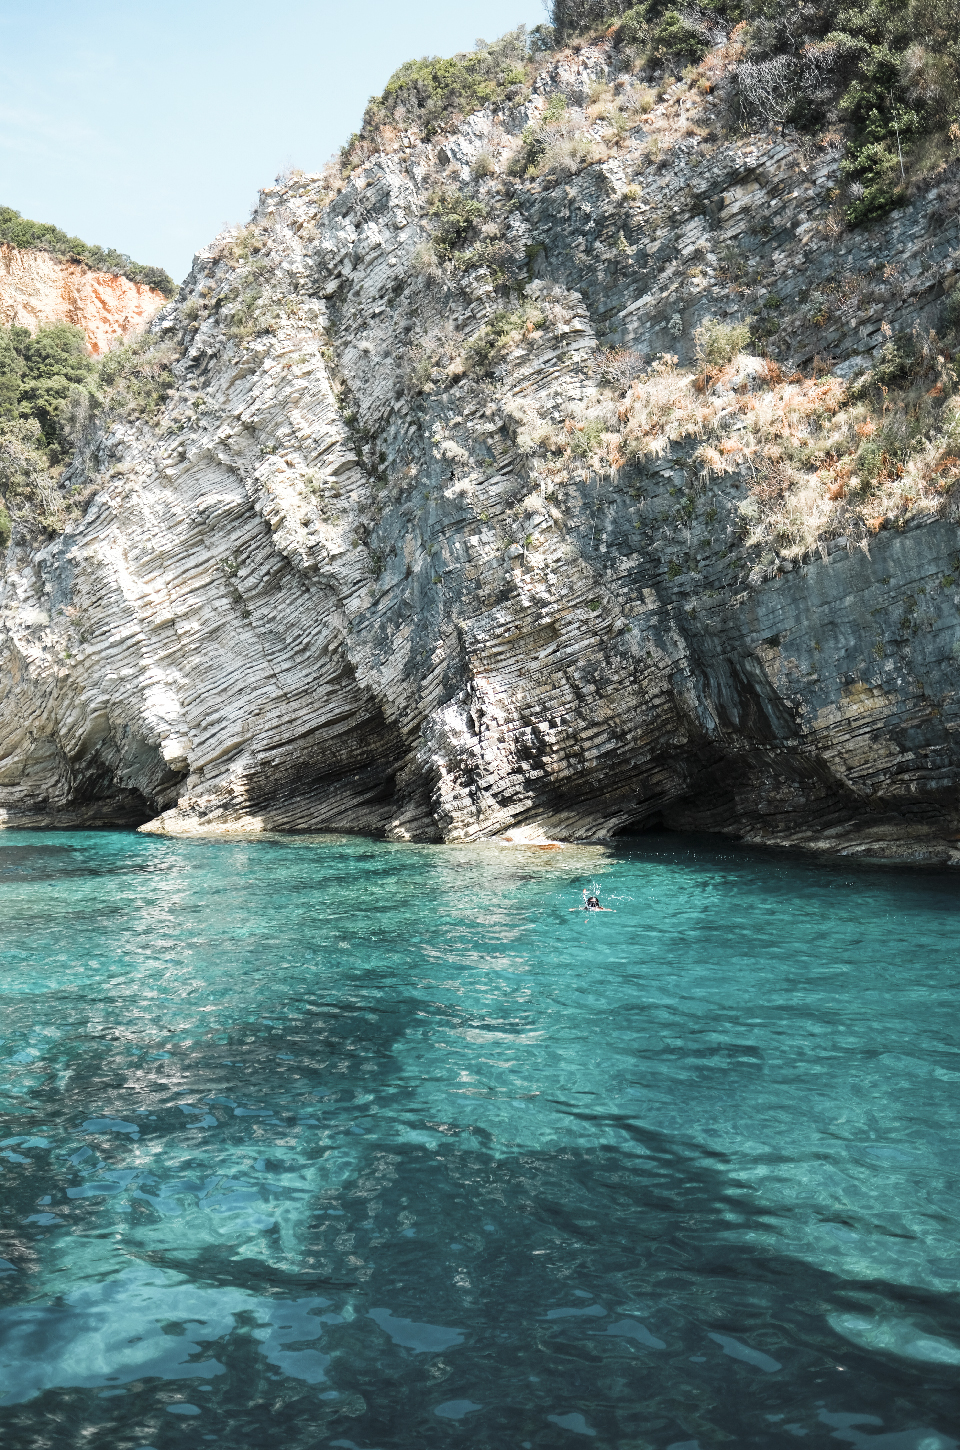 View of the Adriatic sea and caves, weekend in Greece